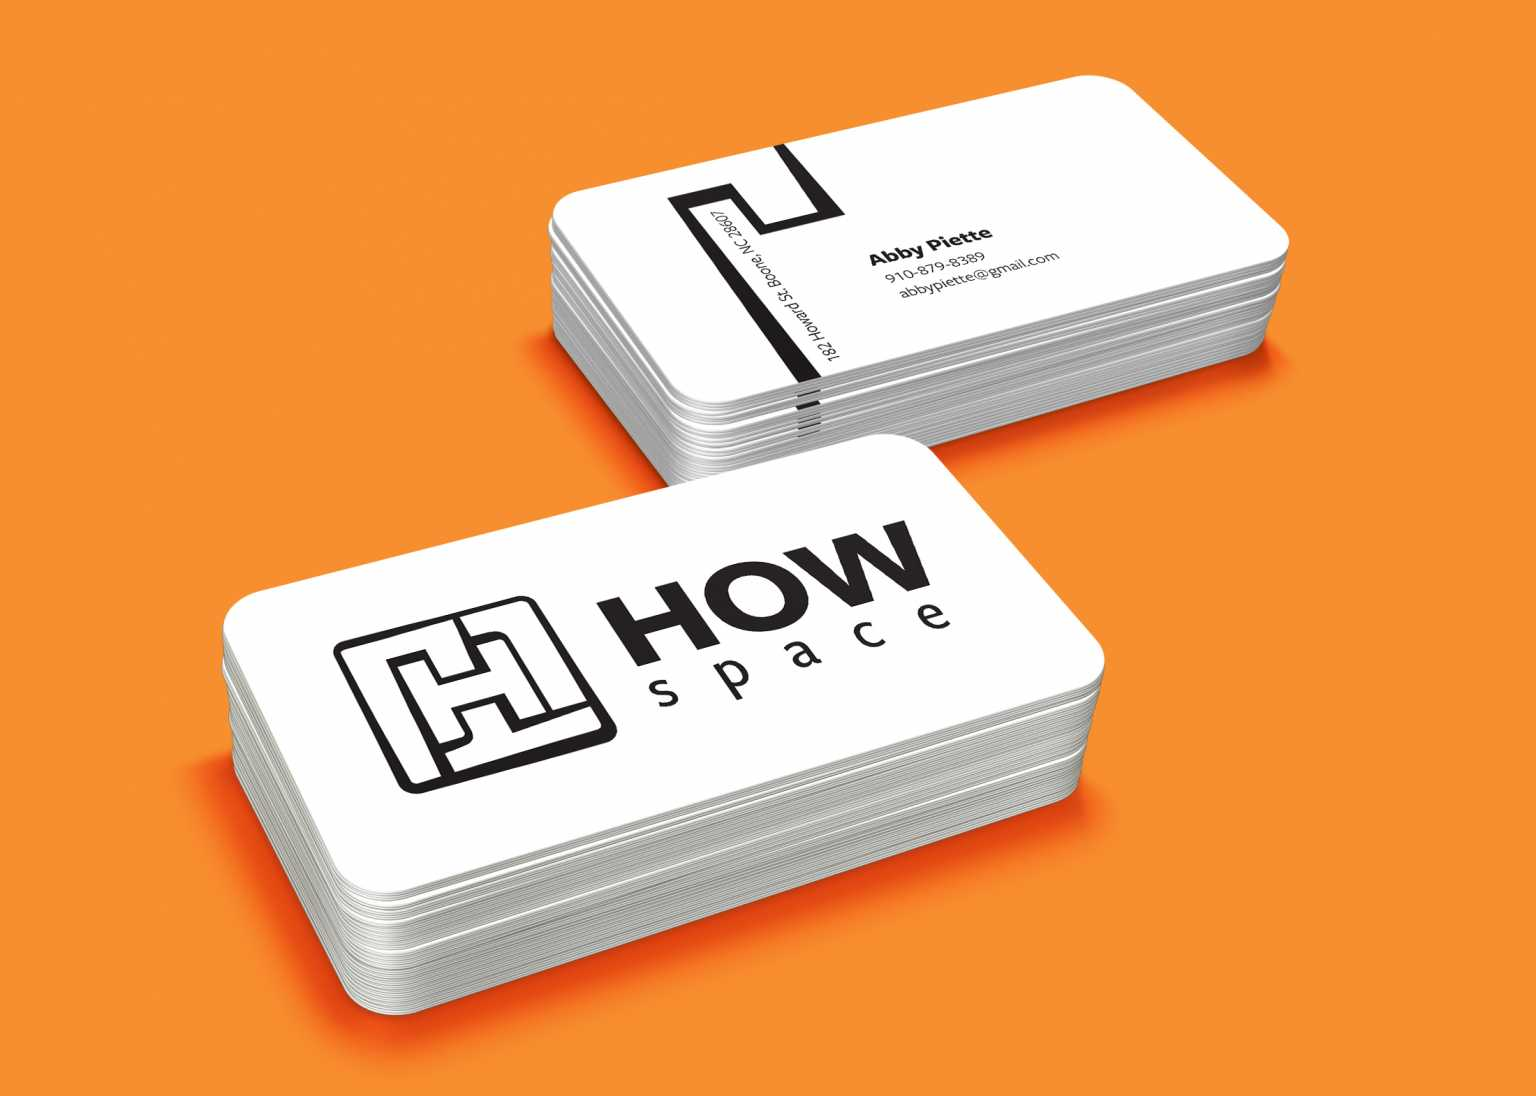 How Space business cards by Abby Piette and Matt Frizzell